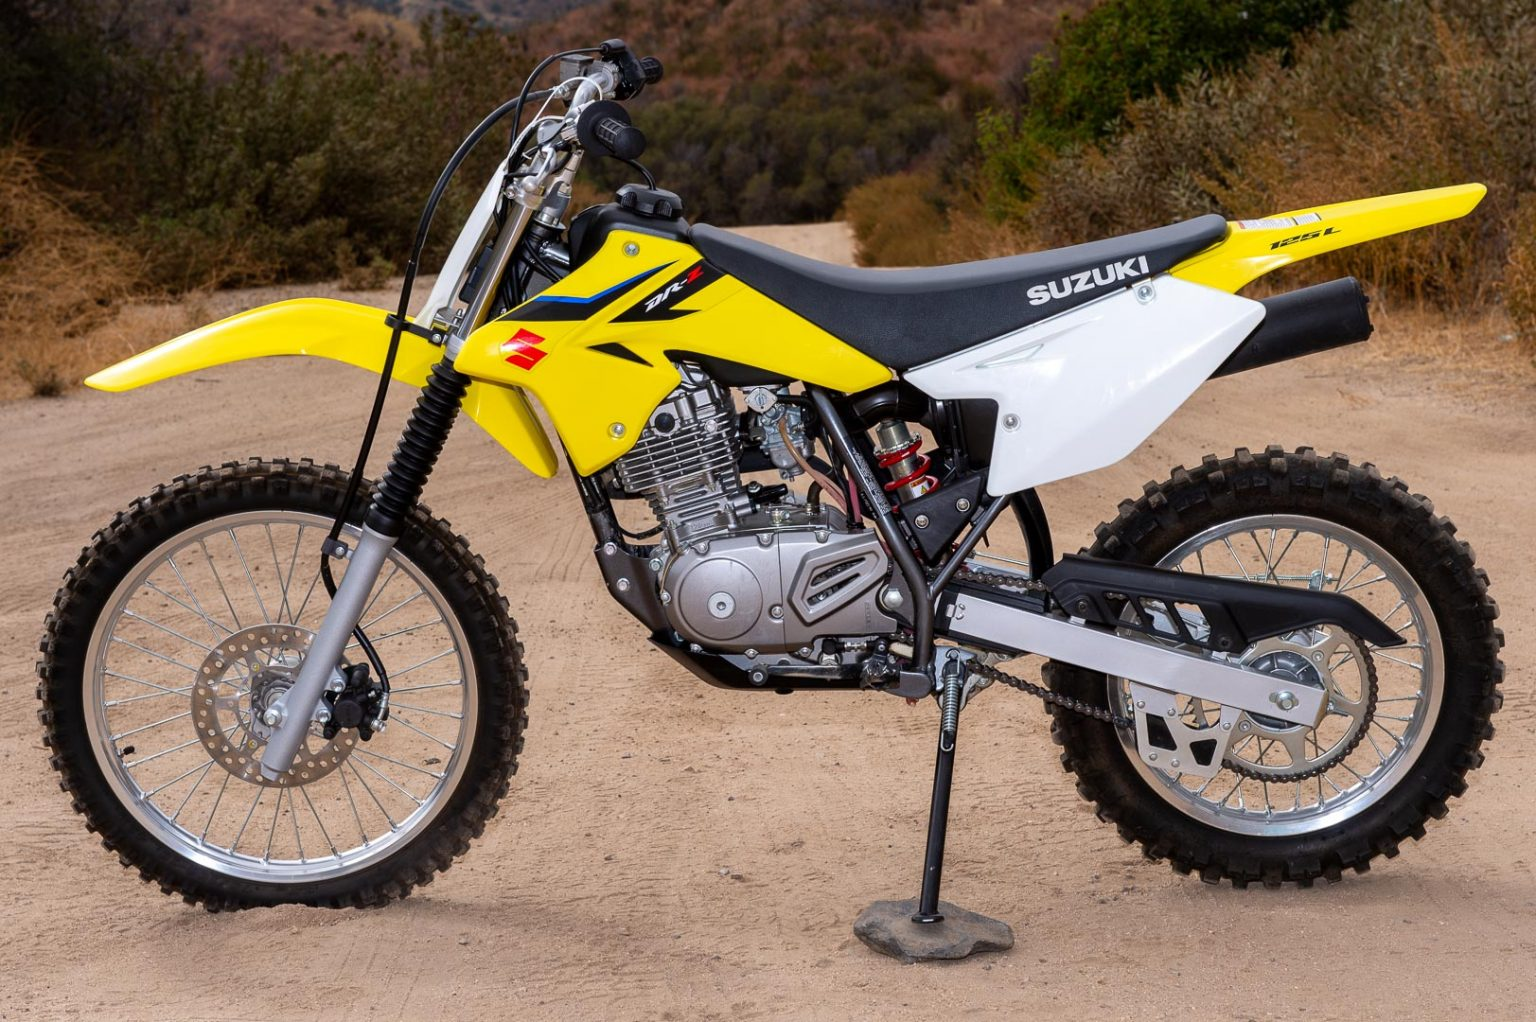 2020 SUZUKI DR-Z125L REVIEW: THROWBACK OFF-ROAD MOTORCYCLE